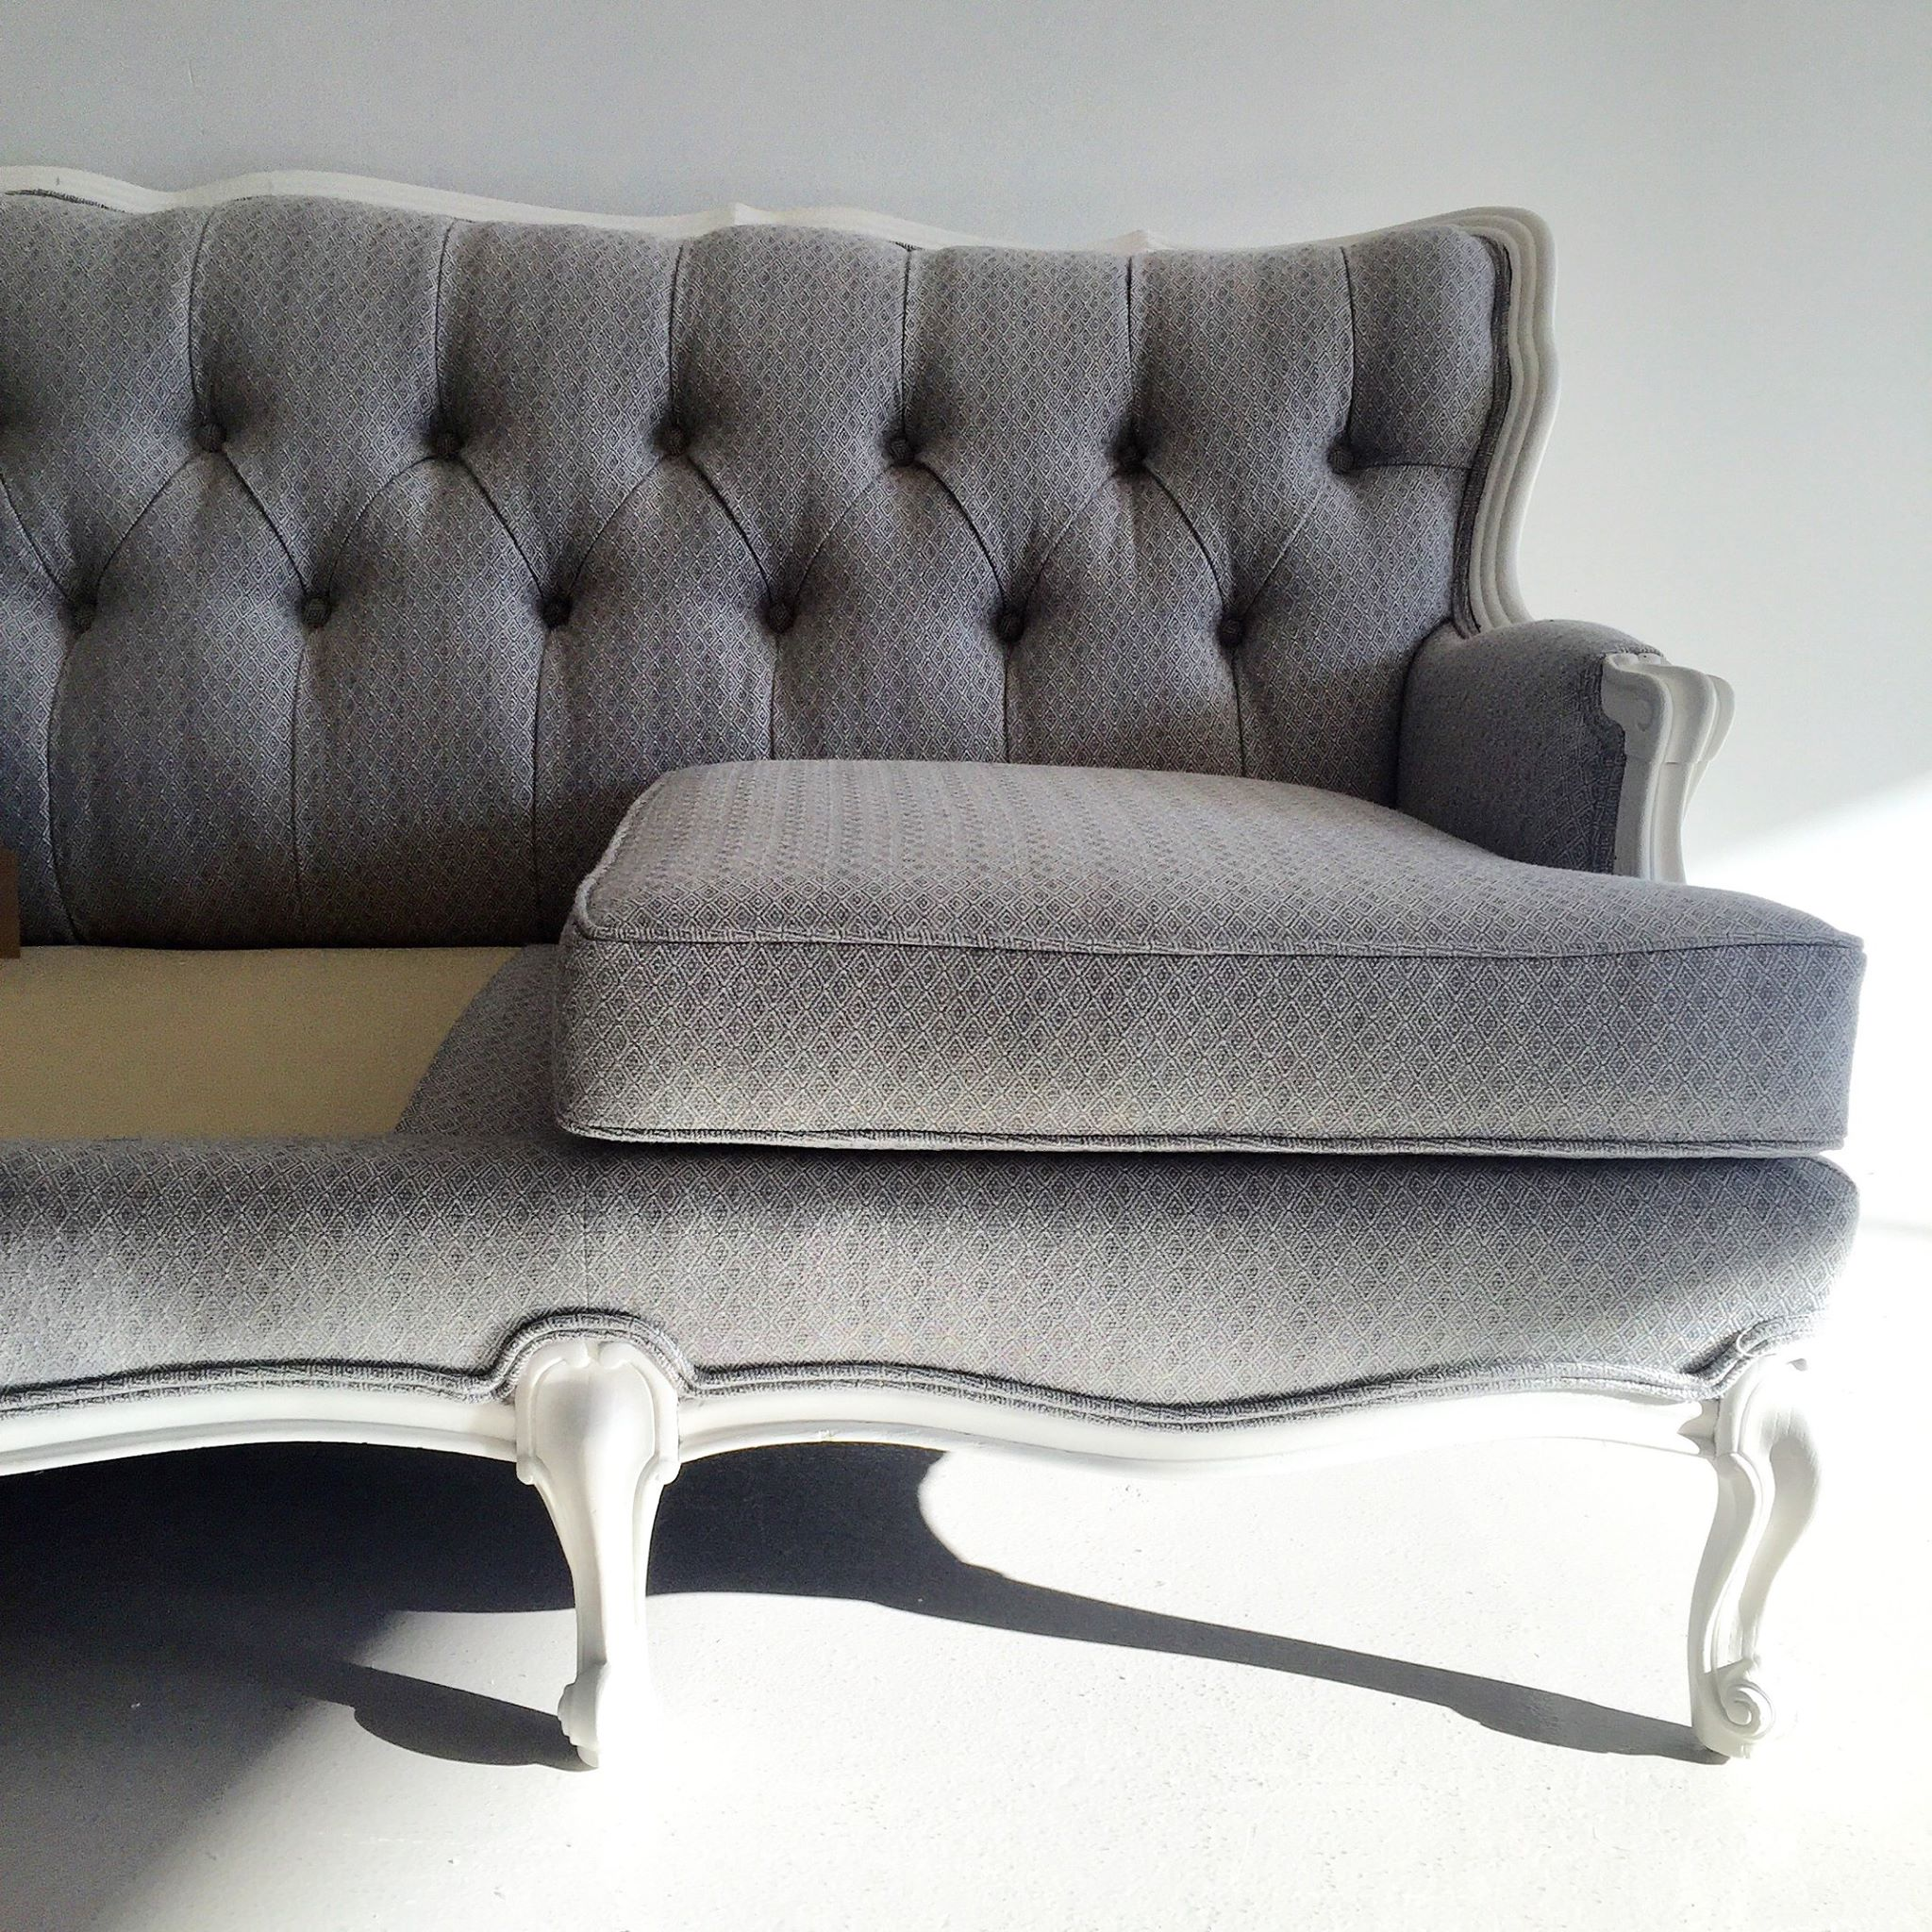 Vintage sofa in progress, fabric by Trend